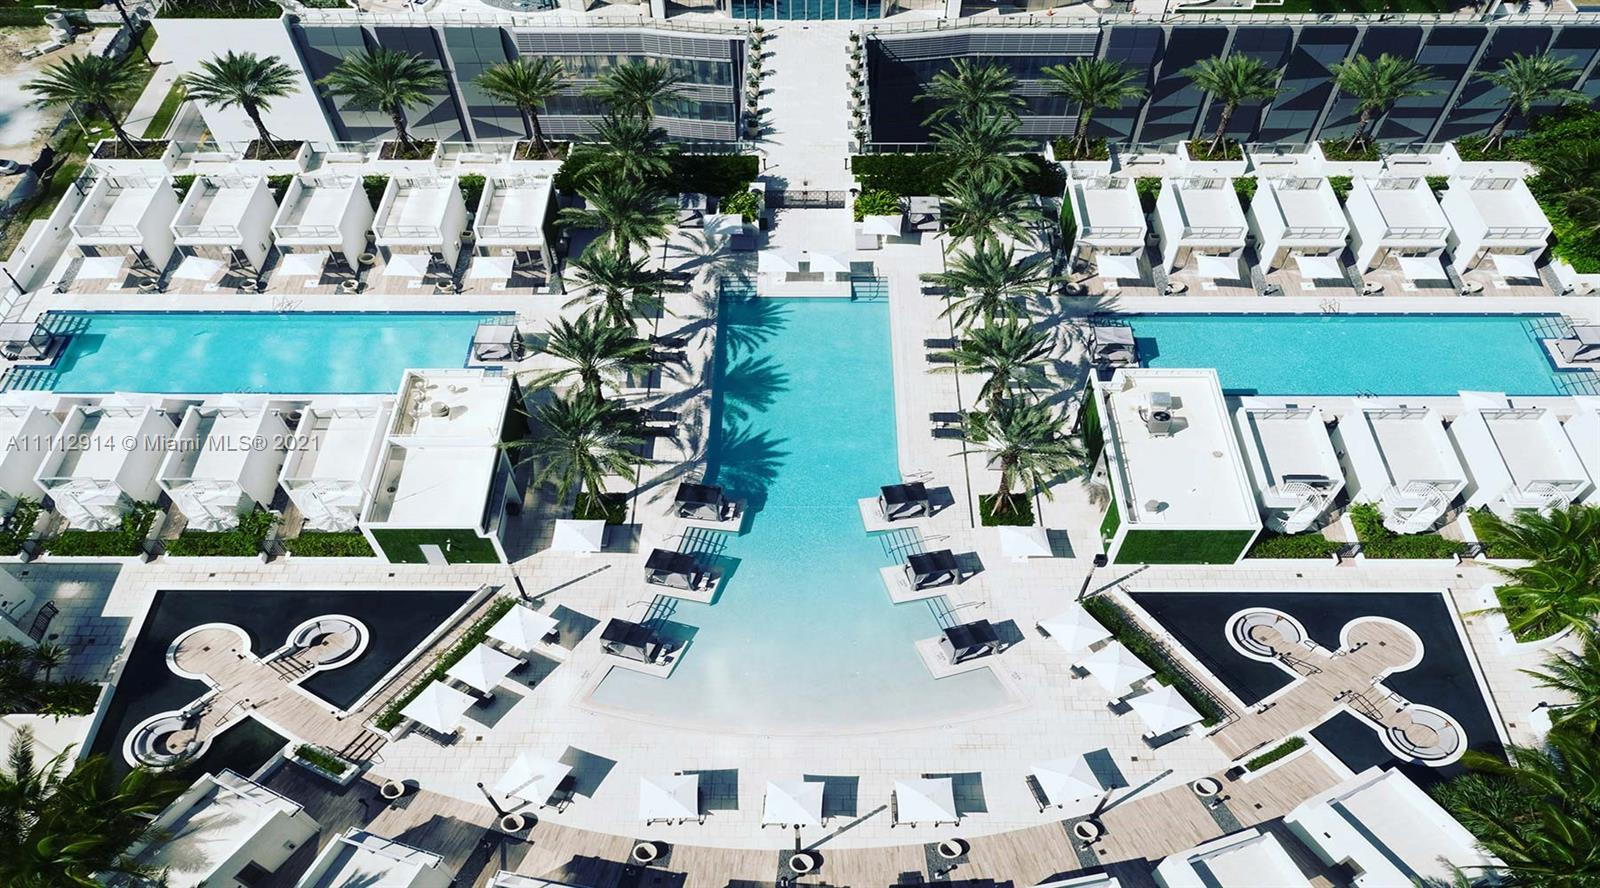 Luxurious and highly desirable 2 Bed + Den /3 bath residential Condo at the Paramount Miami WorldCen